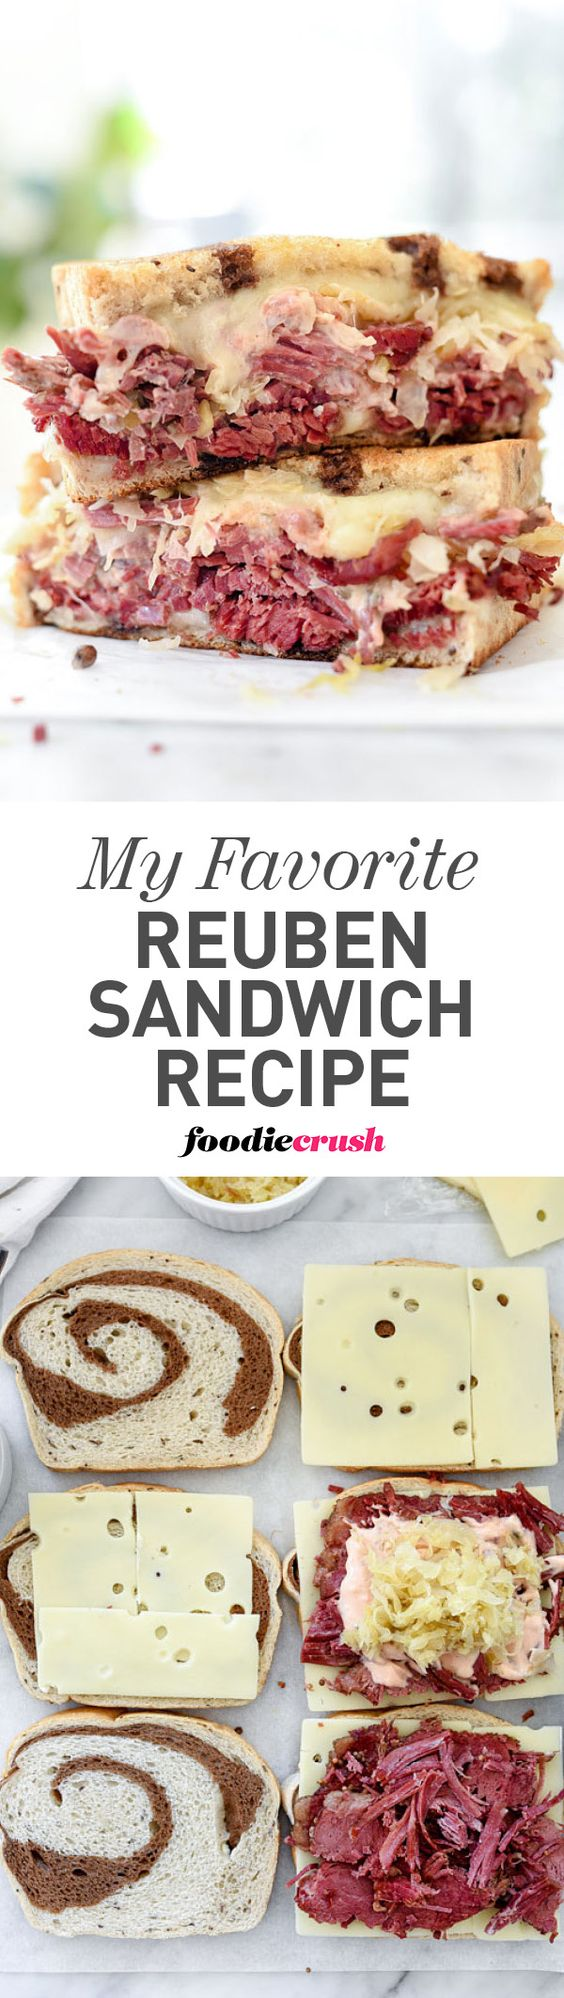 Slow-cooker corned beef is the star of this sandwich loaded with sauerkraut, cheese and homemade Russian dressing #sandwich #cornedbeef #stpatricksday   foodiecrush.com